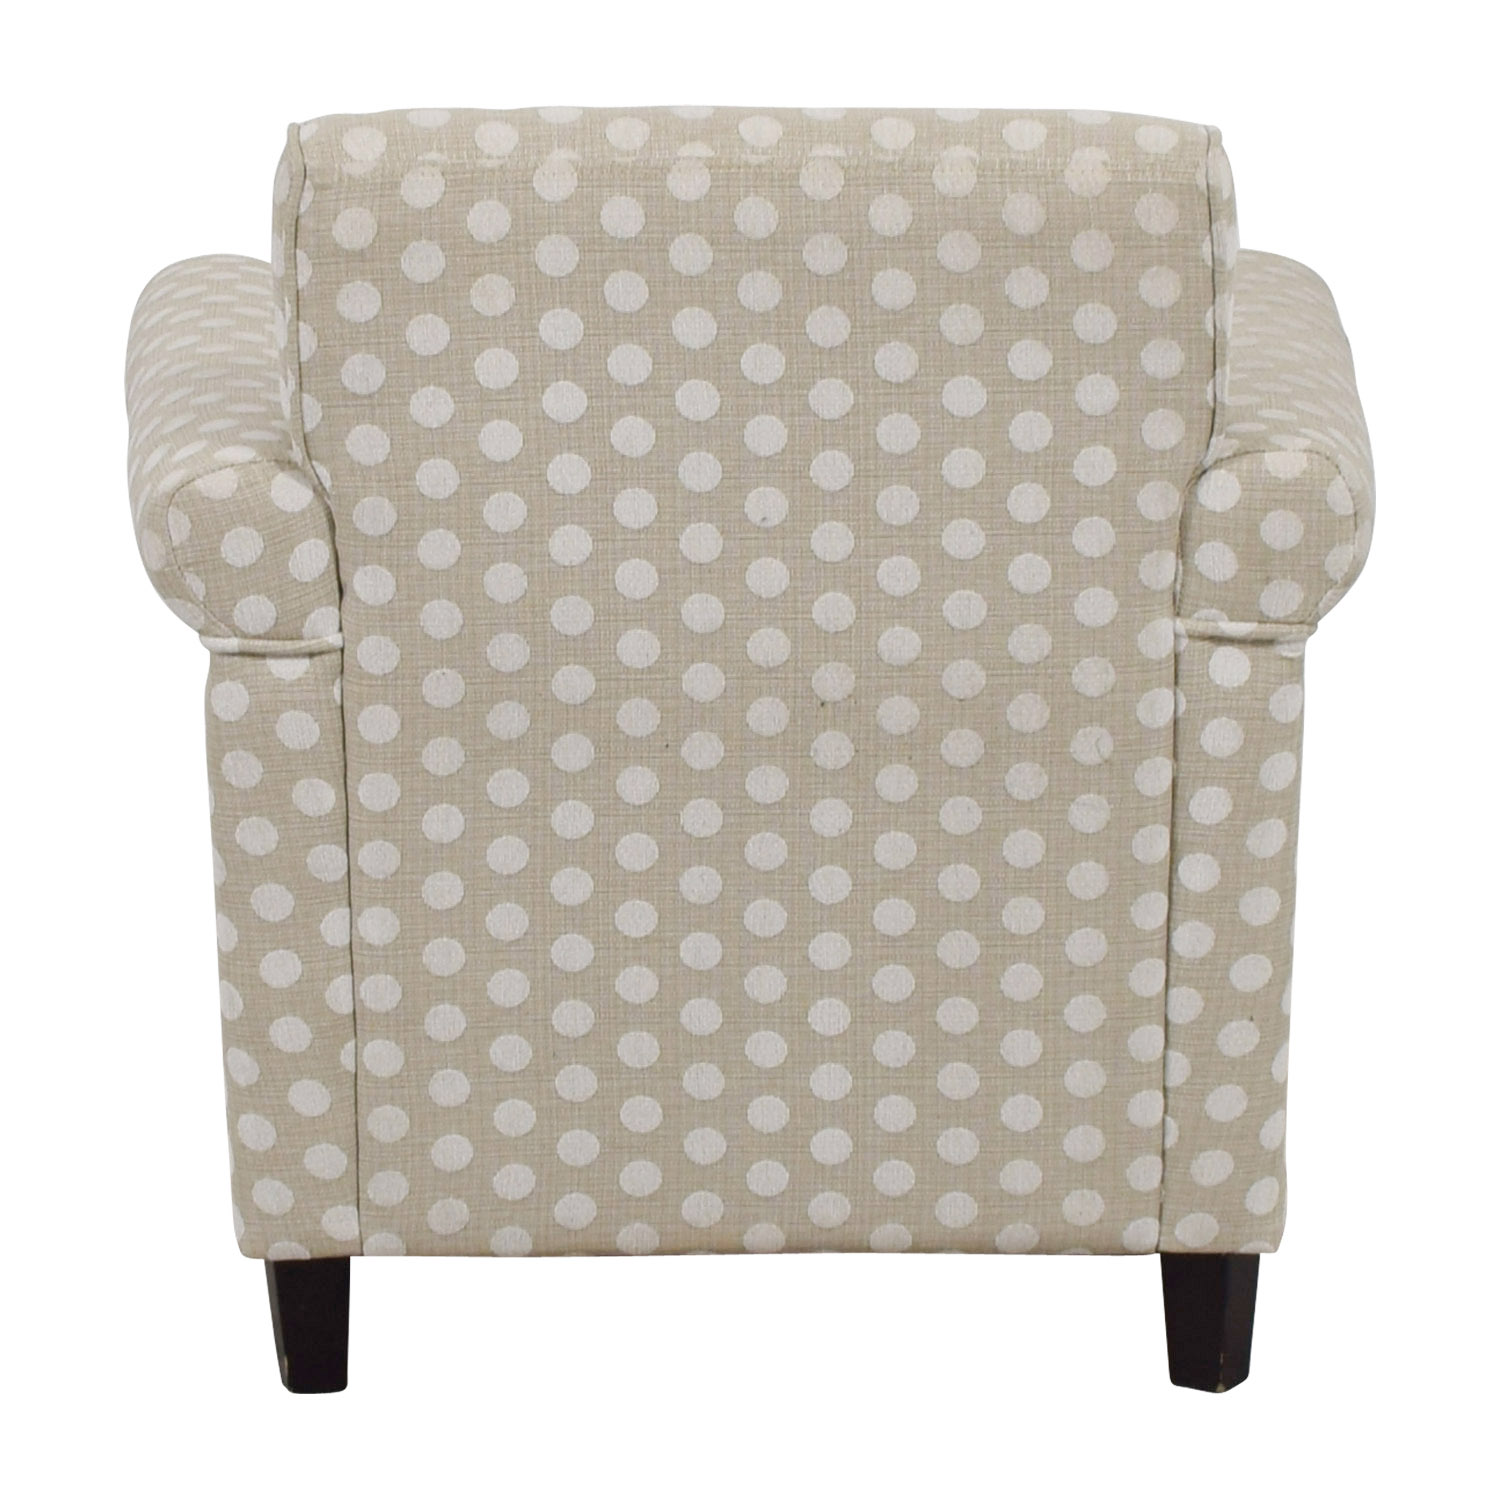 shop Adventures in Furniture Polka Dot Arm Chair Adventures in Furniture Chairs